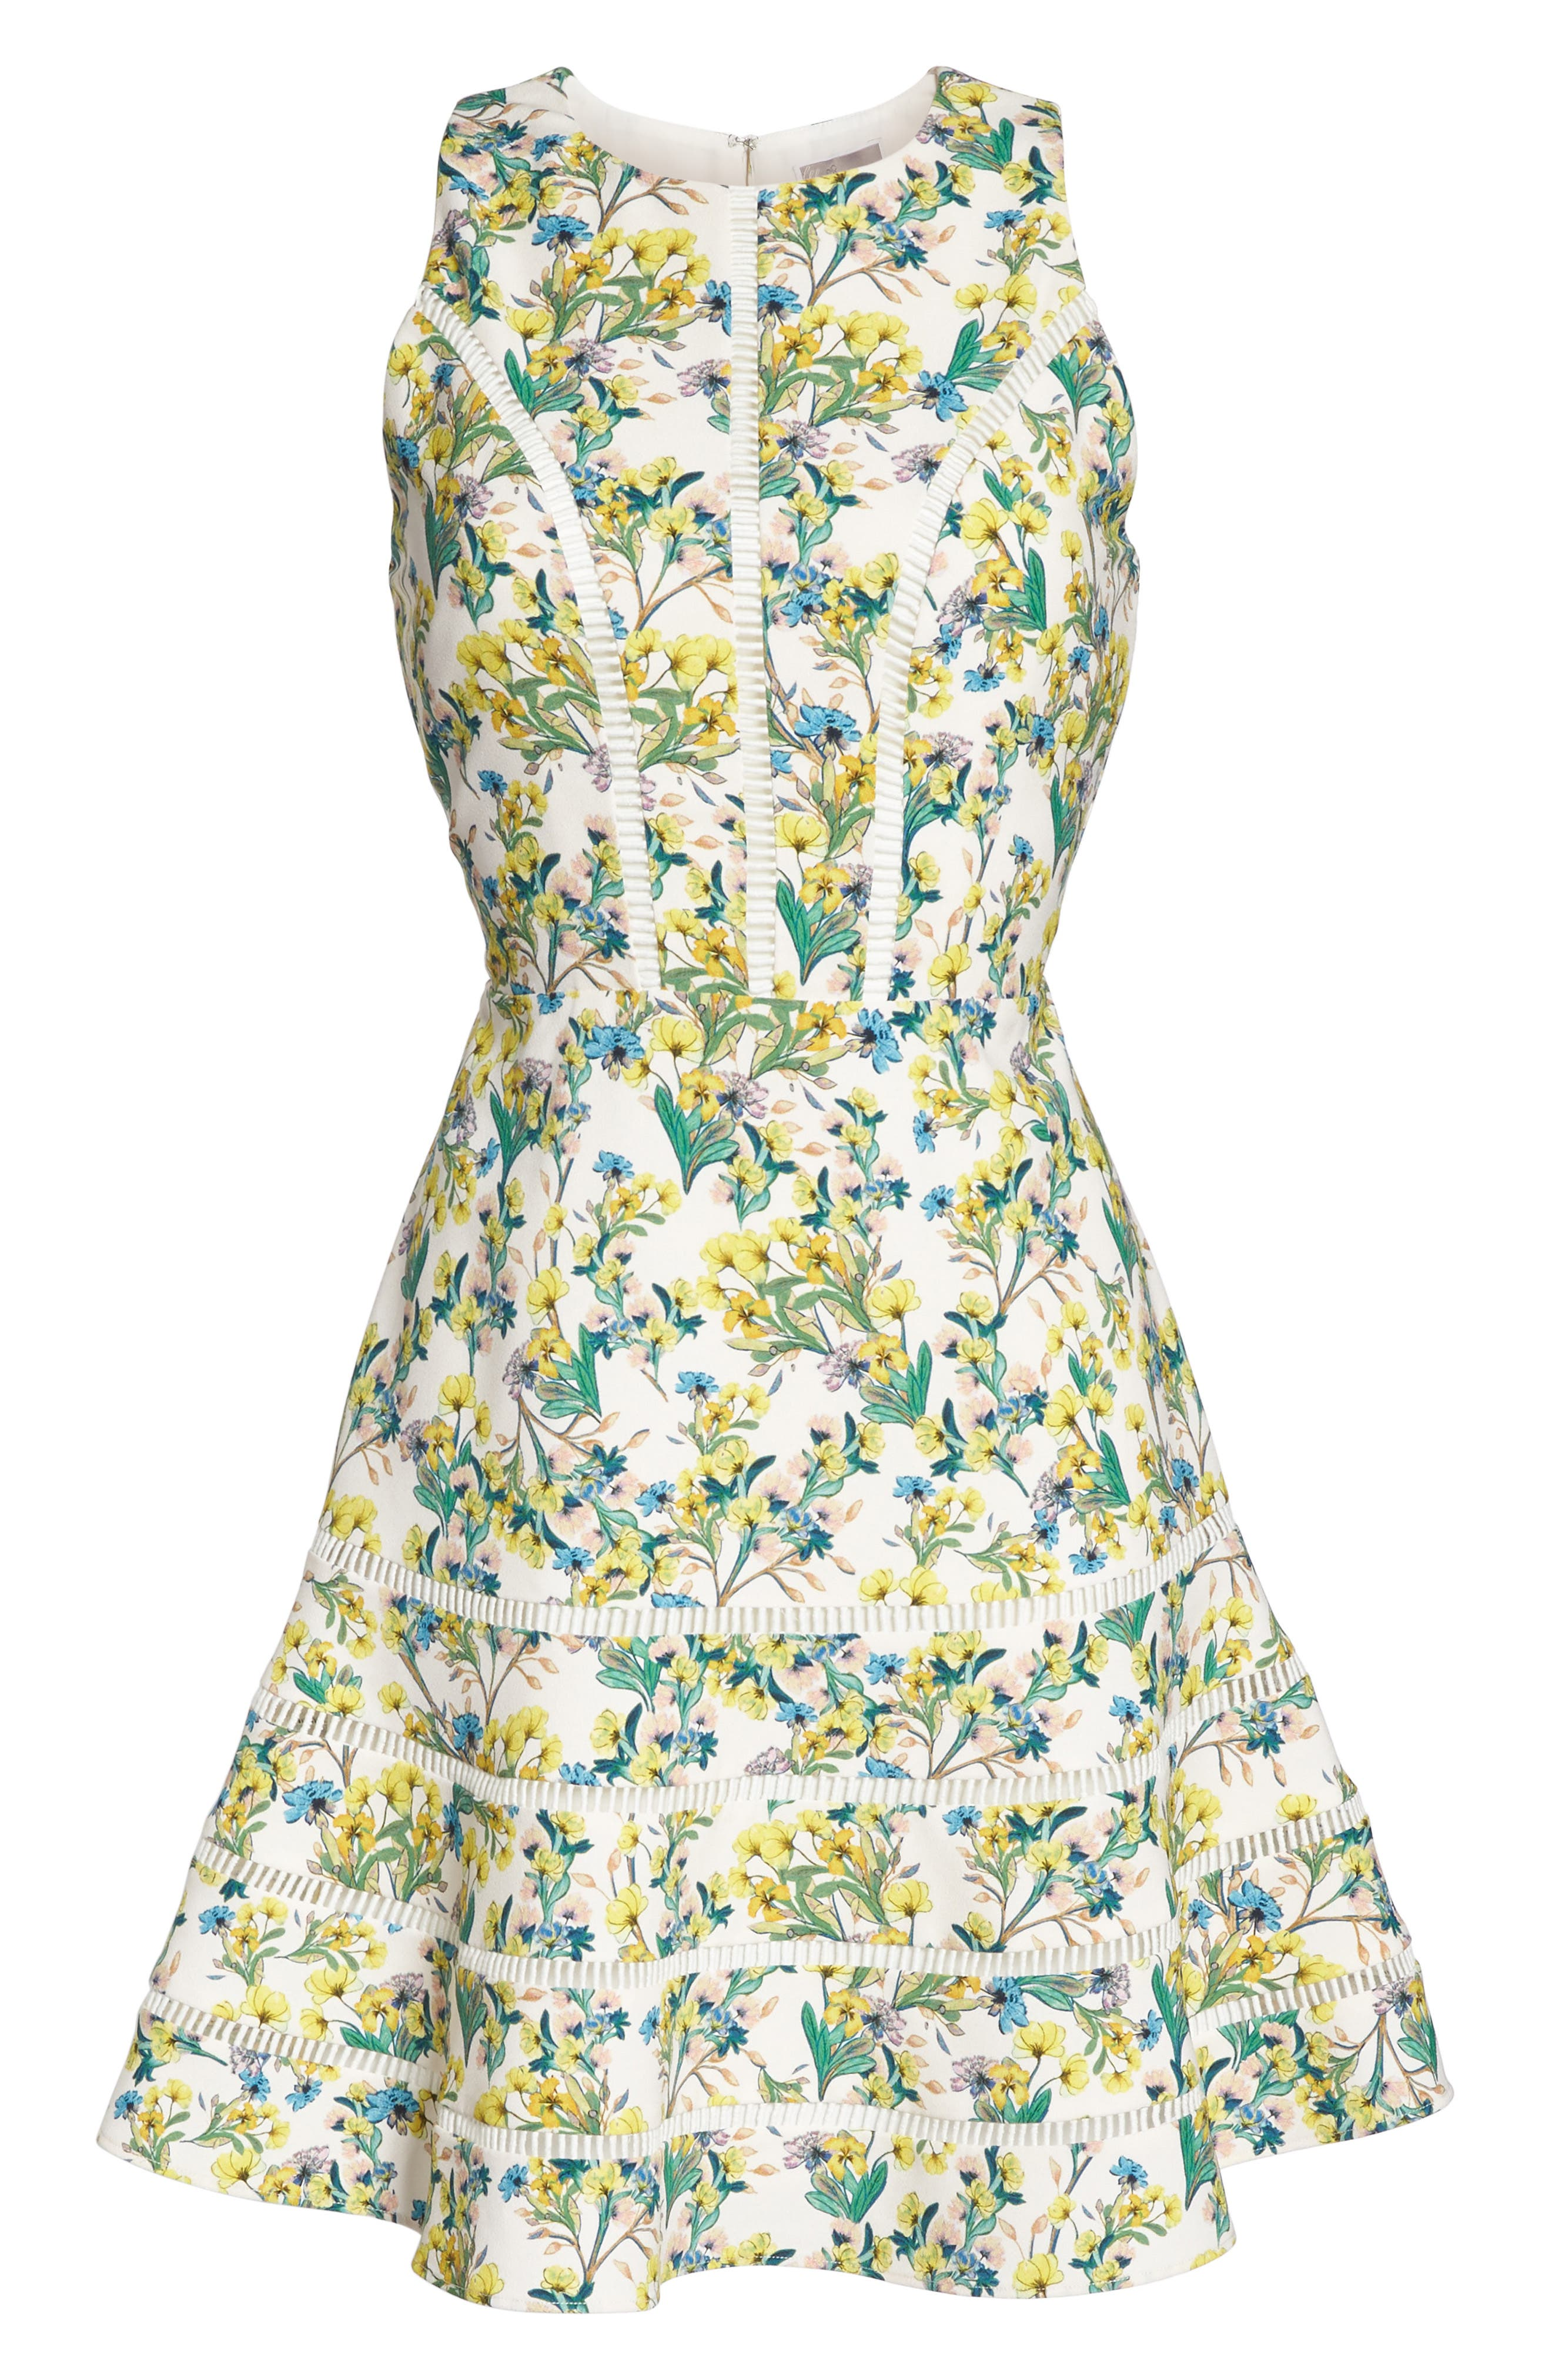 Lace Detail Fit & Flare Dress,                             Alternate thumbnail 6, color,                             Ivory Lucy Floral